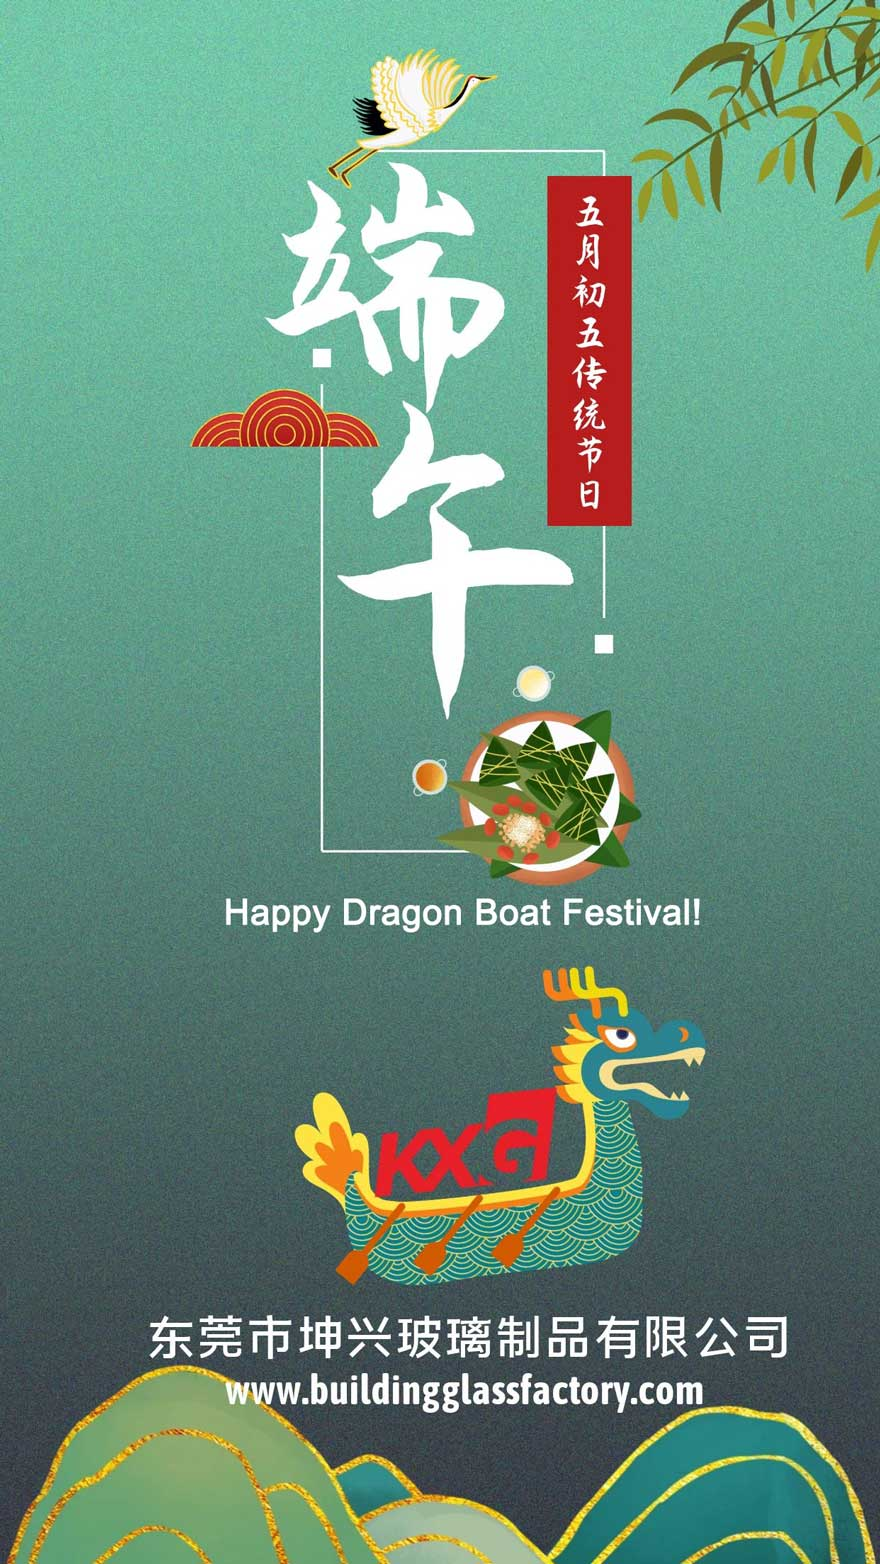 KXG wish everybody a happy Dragon Boat Festival